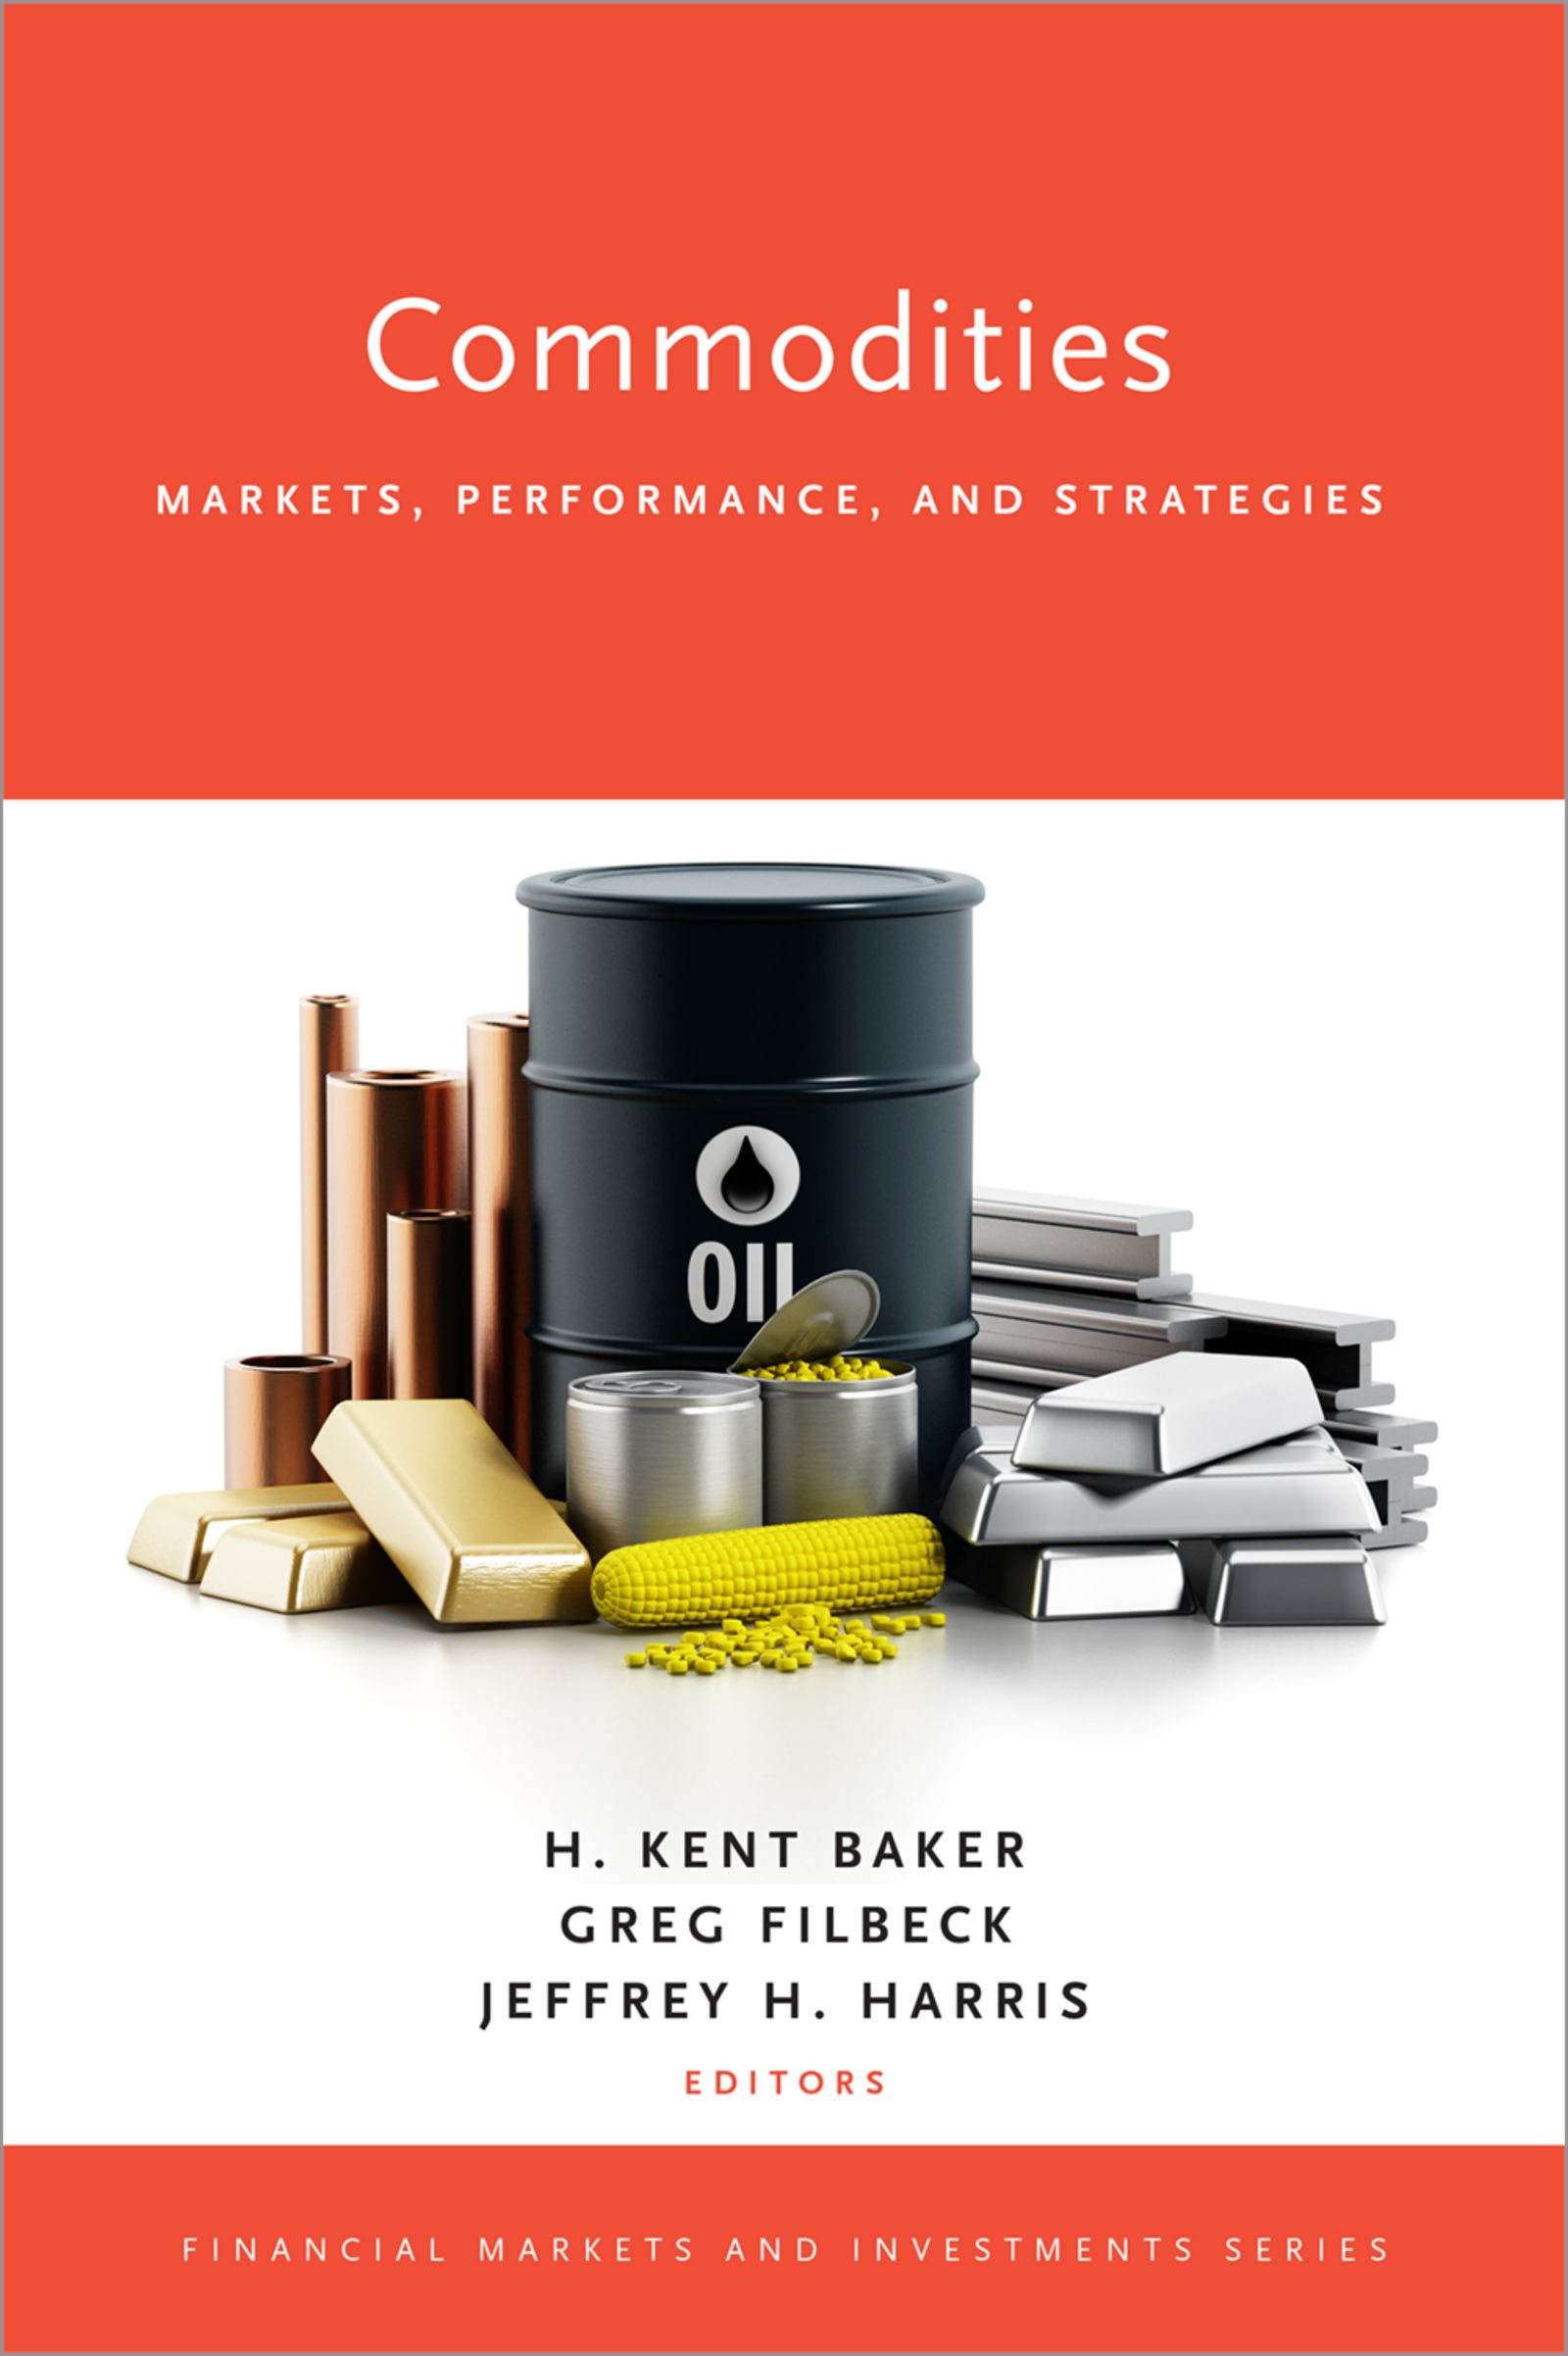 Download Ebook Commodities by H. Kent Baker Pdf